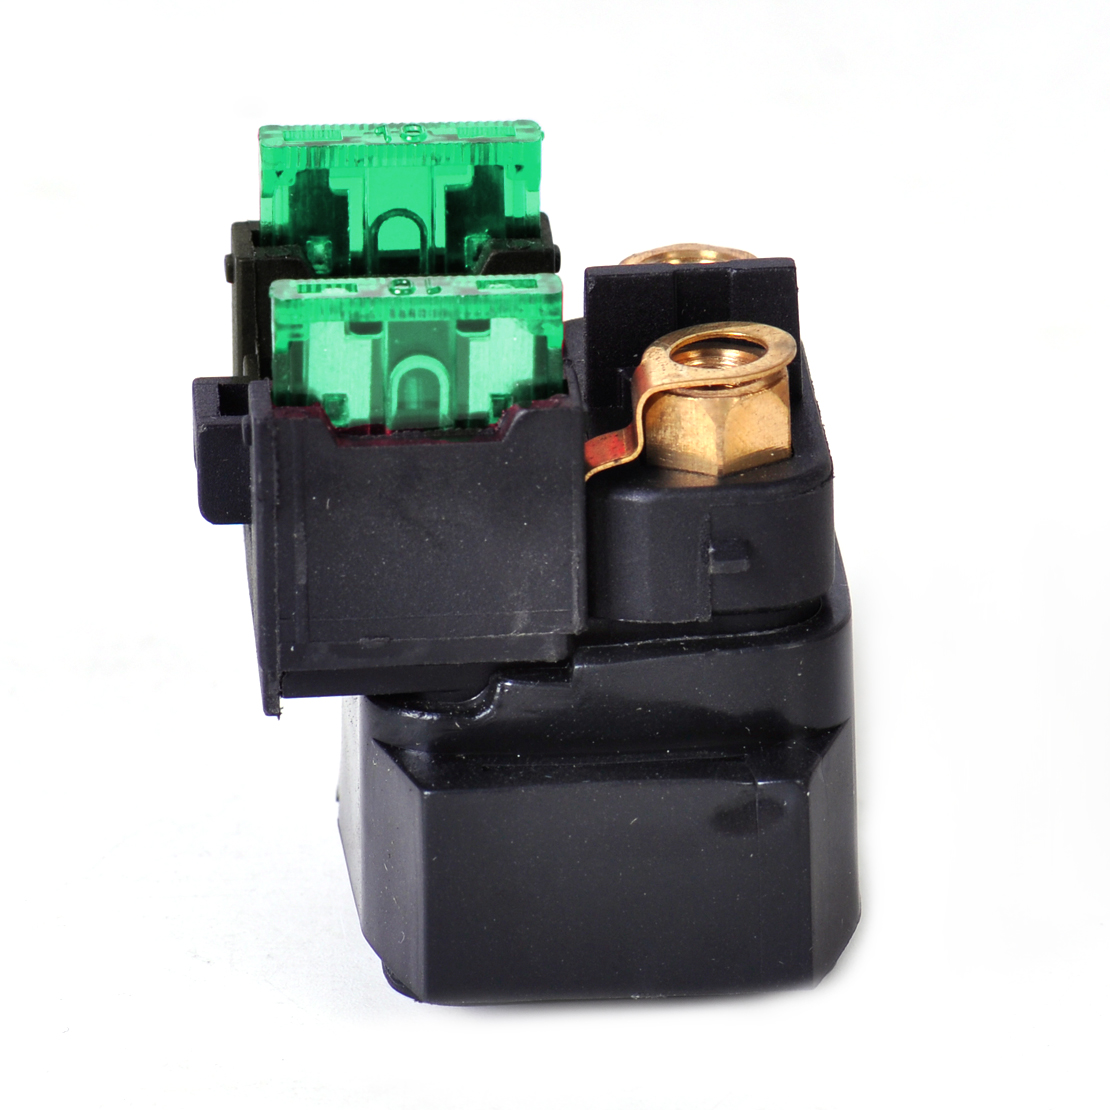 Starter Relay Specs Pictures To Pin On Pinterest PinsDaddy - John deere wiring diagram for am107421 kit